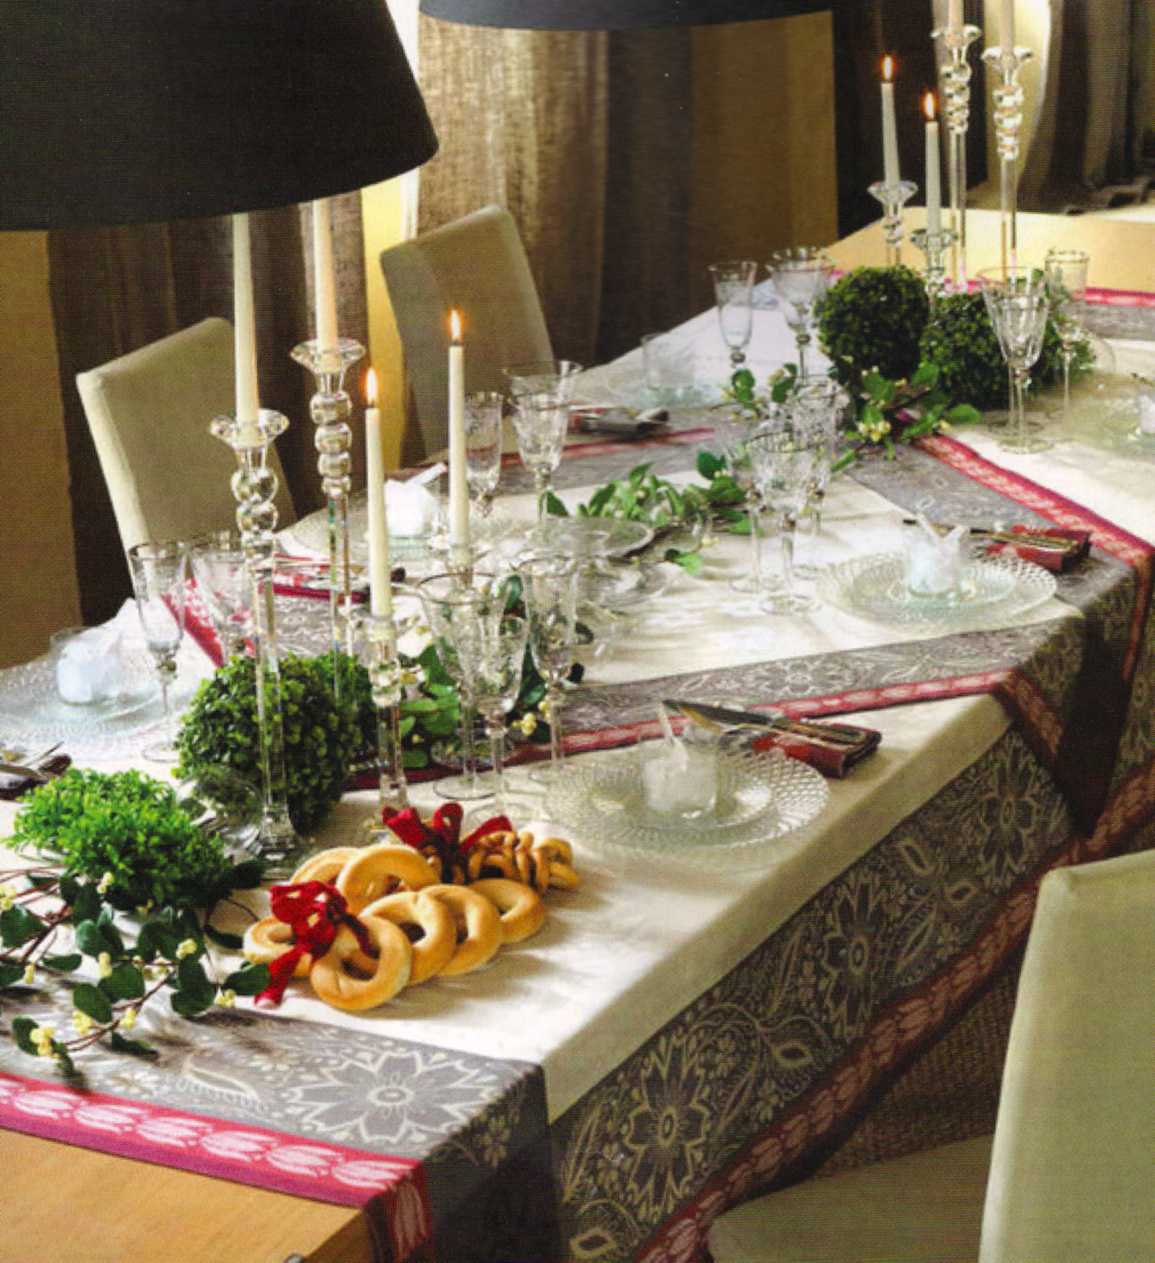 Splendid sass christmas tablescapes - Comment decorer sa chambre pour noel ...